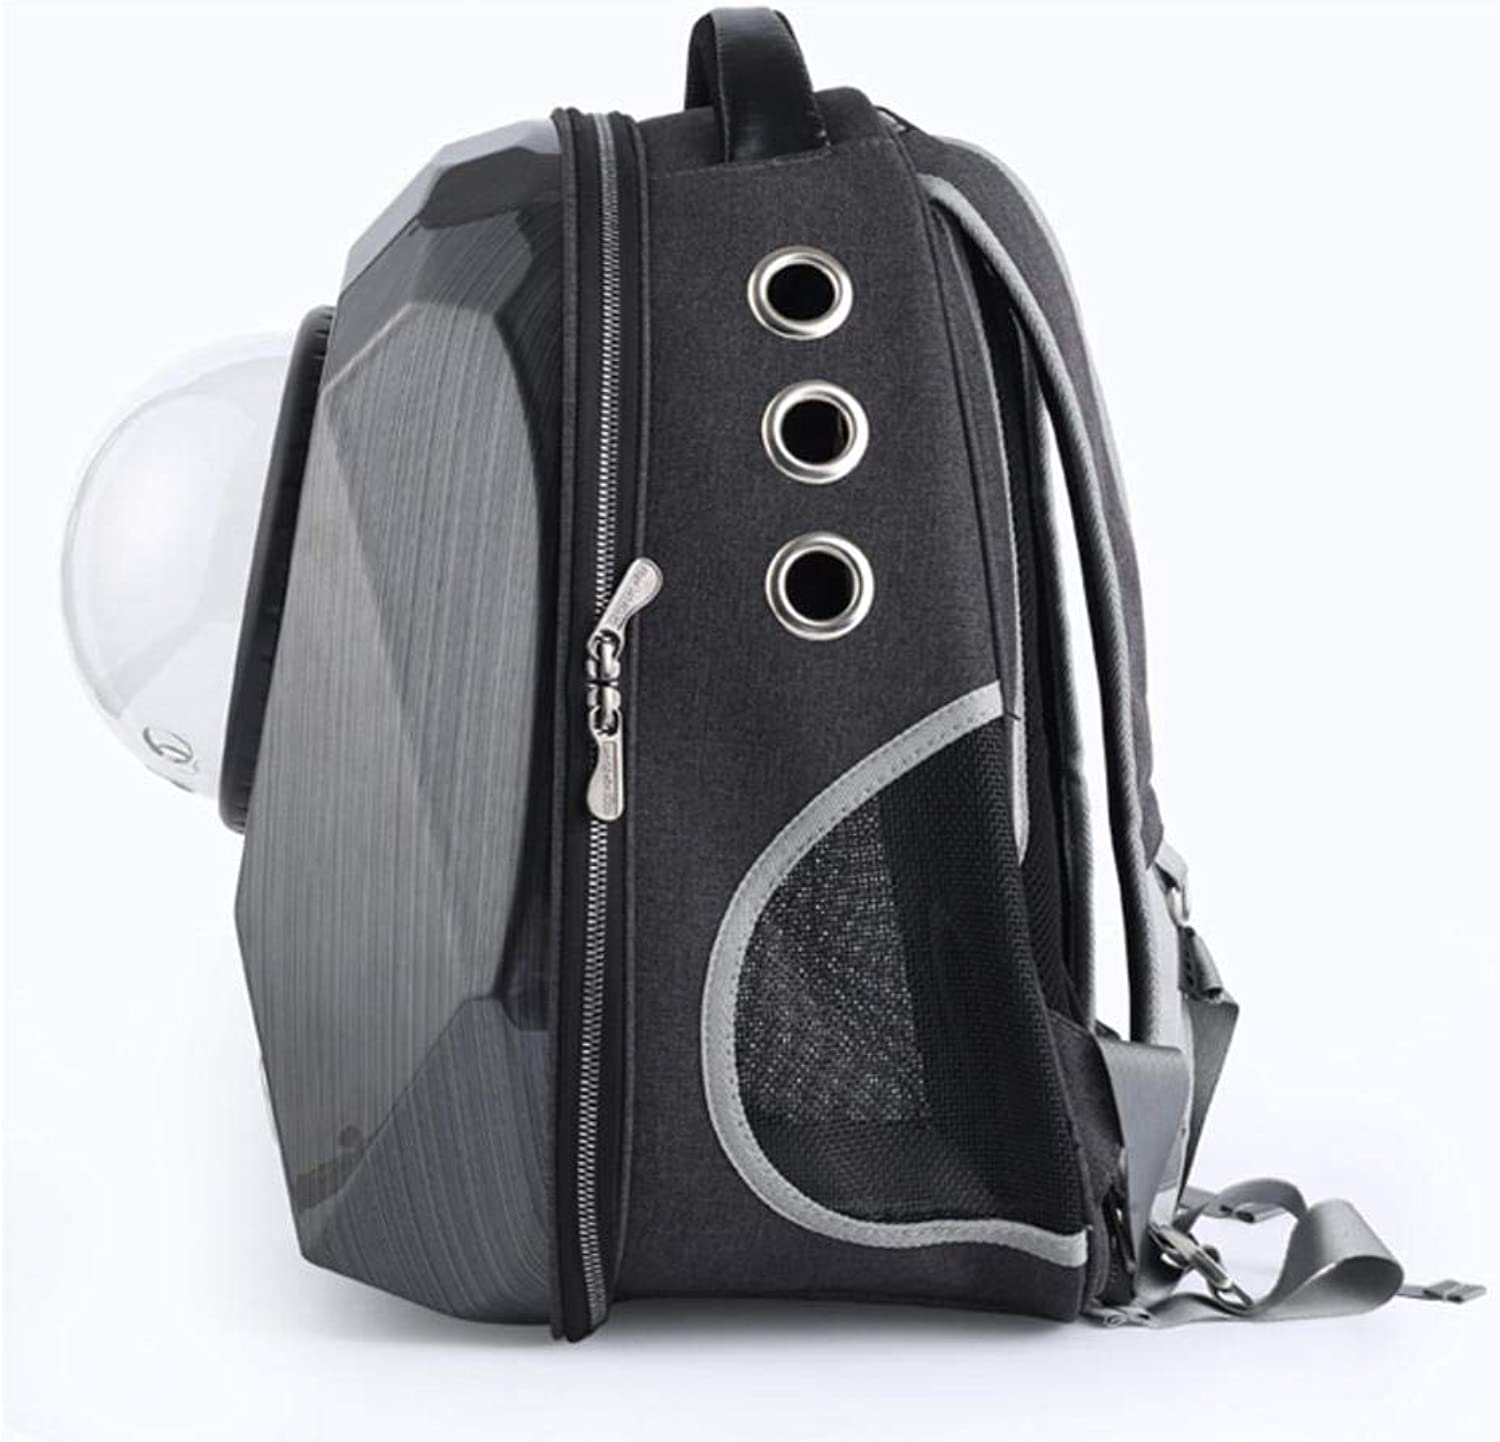 Large Capacity Diamond Space Capsule Pet Carrier Backpack,9 Air Vent Holes Outdoor or Traveler Waterproof Knapsack for Cats Dogs & Petite AnimalsBlack